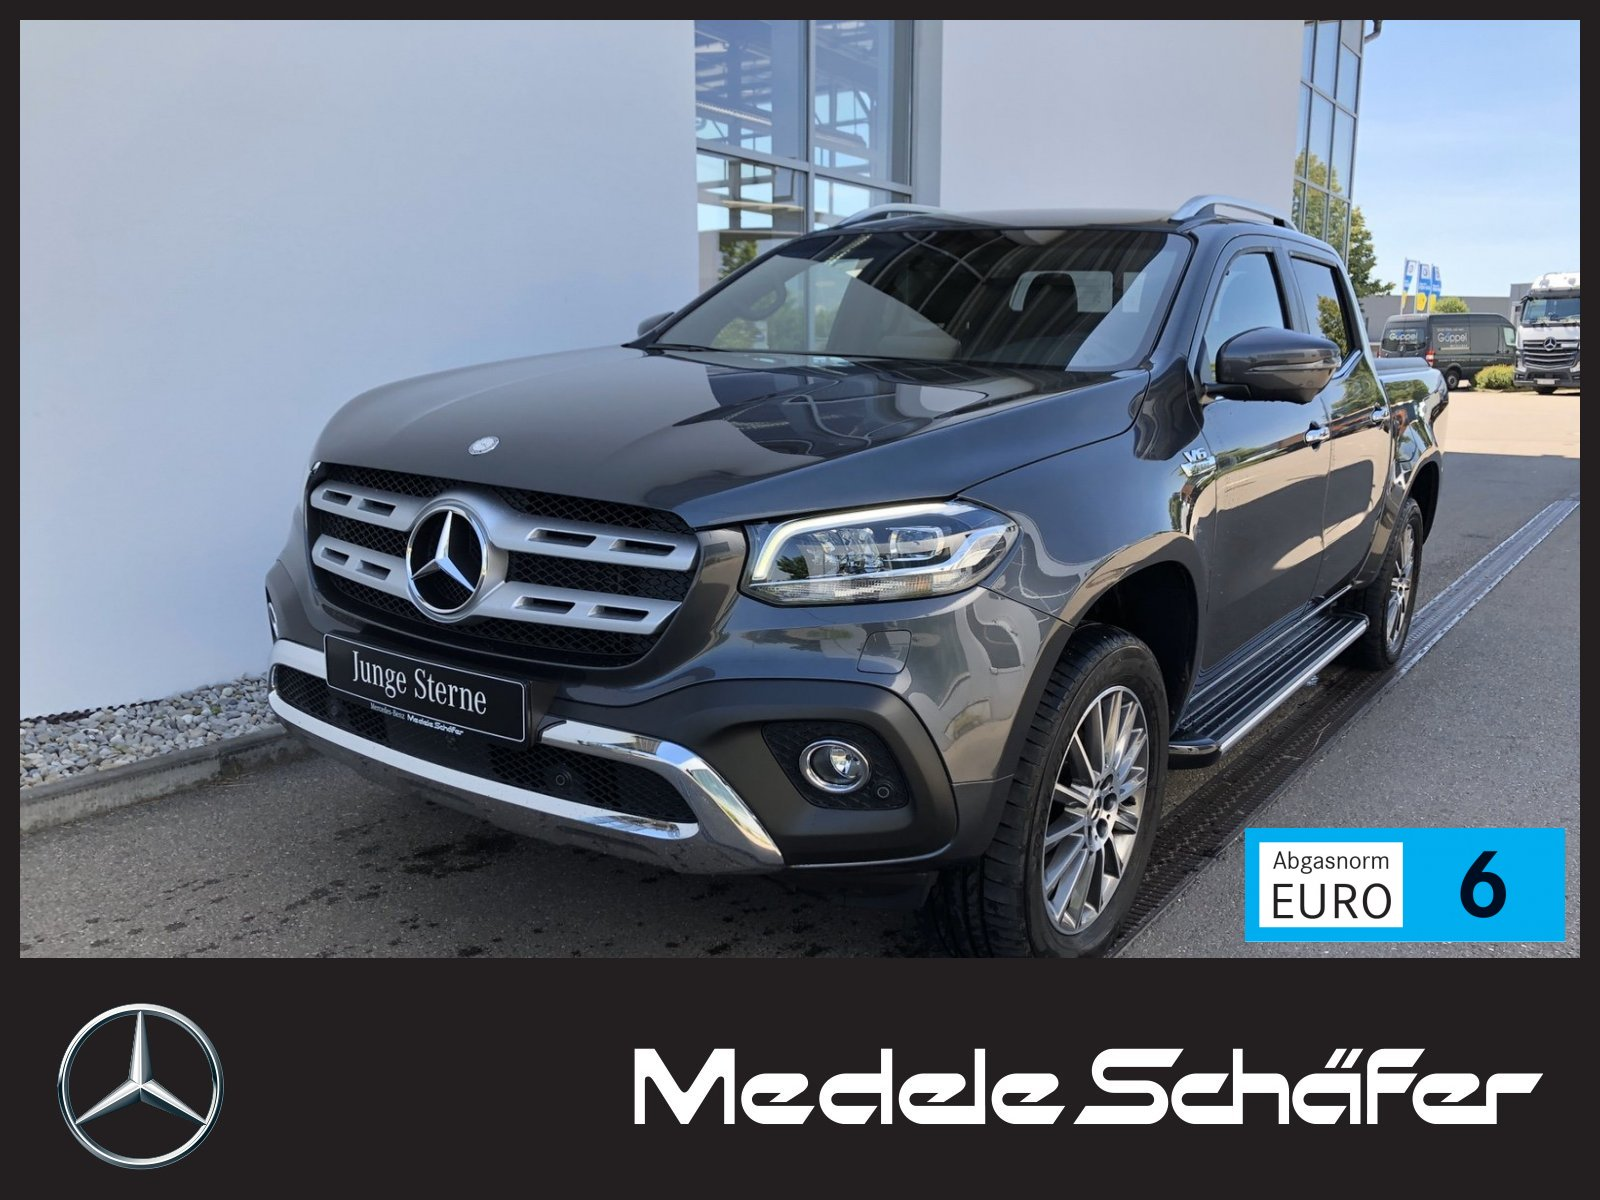 Mercedes-Benz X 350 V6 4MATIC*POWER*COMAND LEDER*LED*AHK*ROLLO, Jahr 2019, Diesel